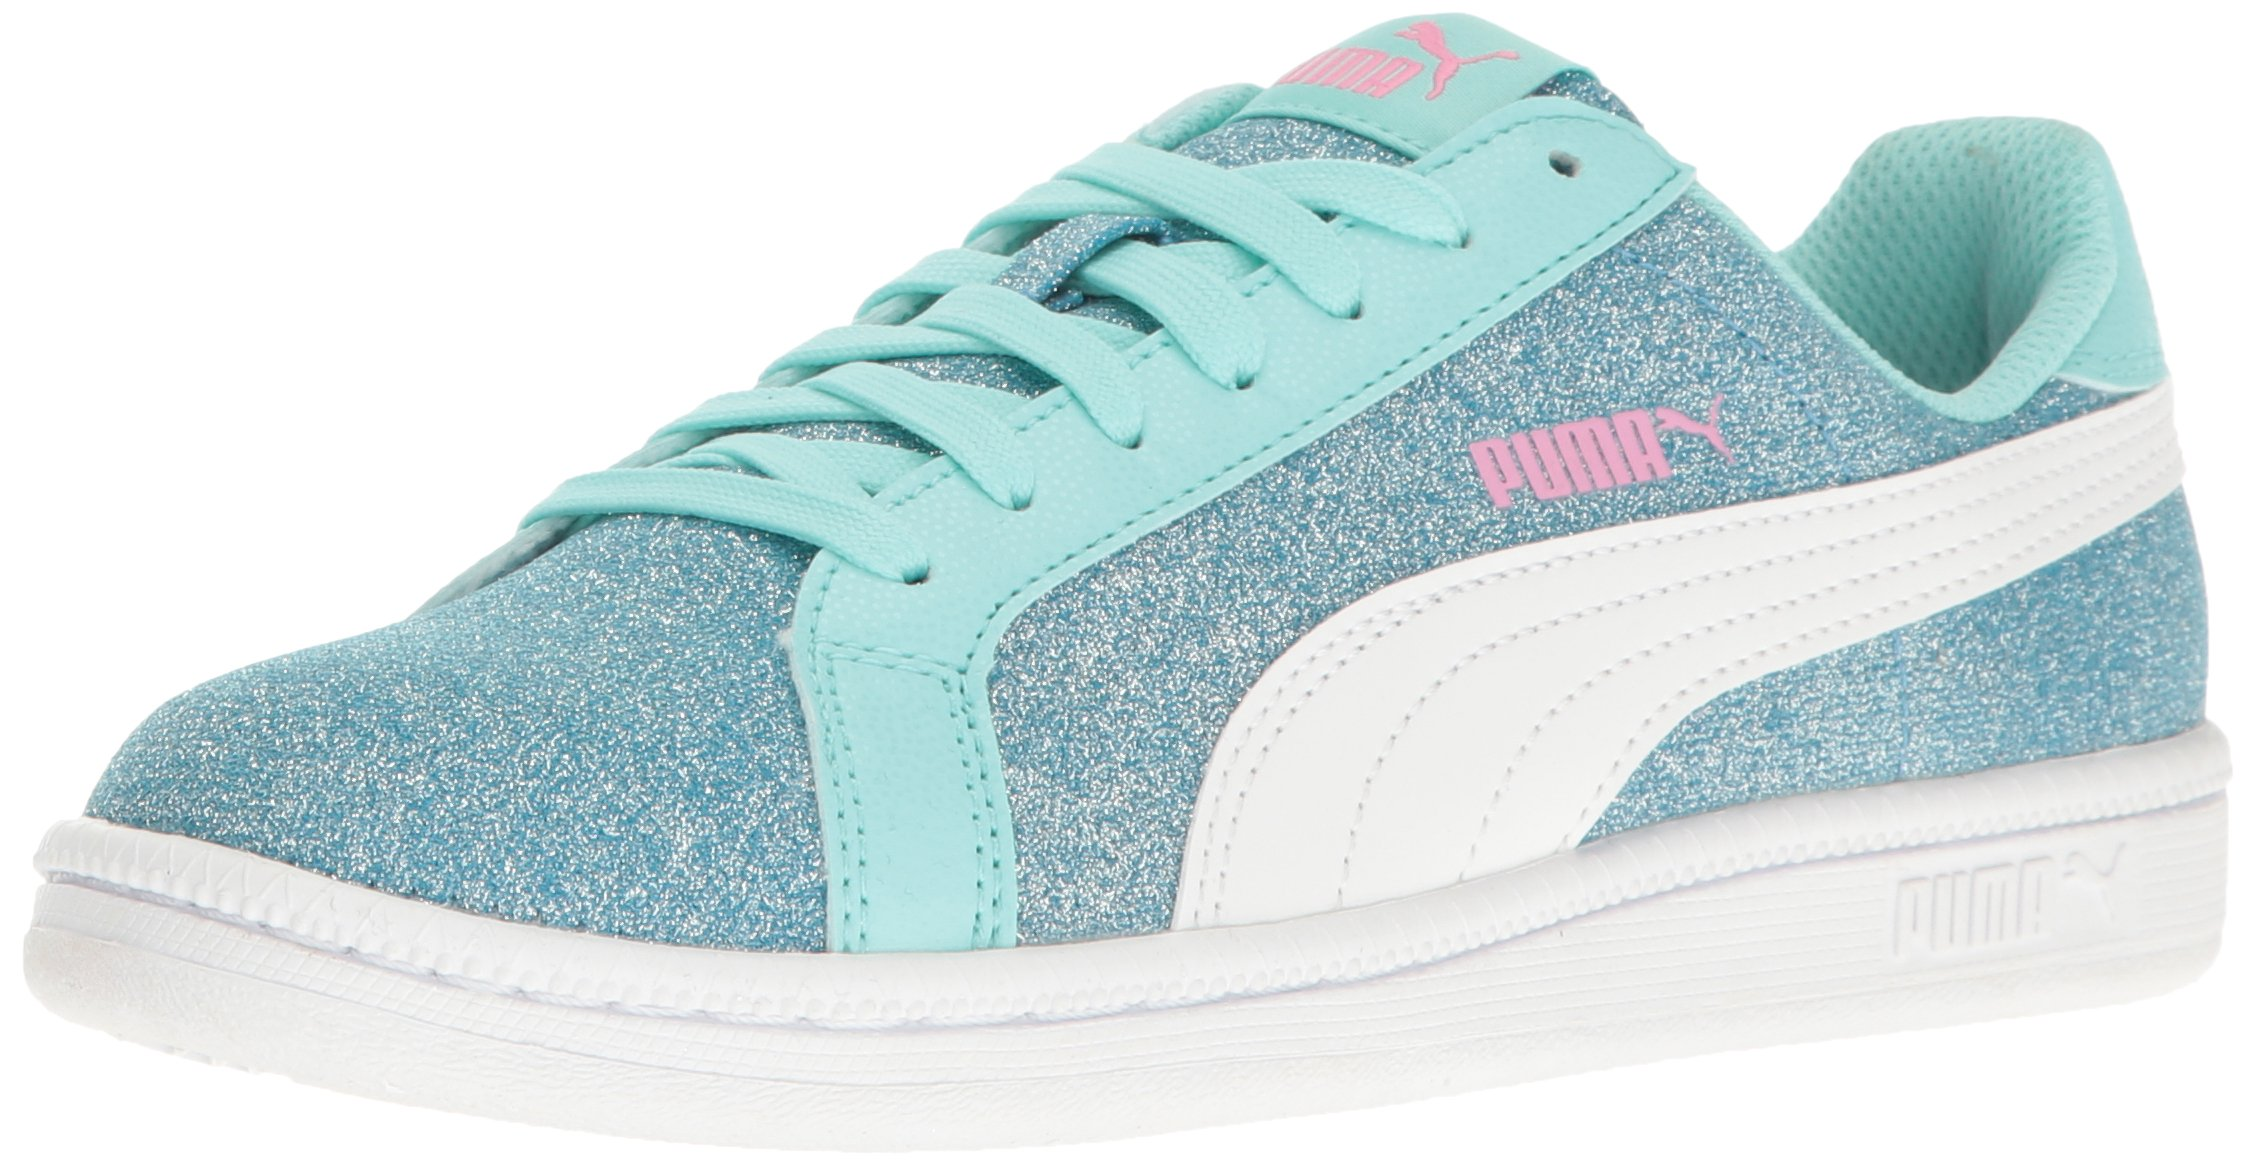 Buy Puma Tallula Glamm Jr Low Top Girls in Cheap Price on Alibaba.com 47bcd68c2